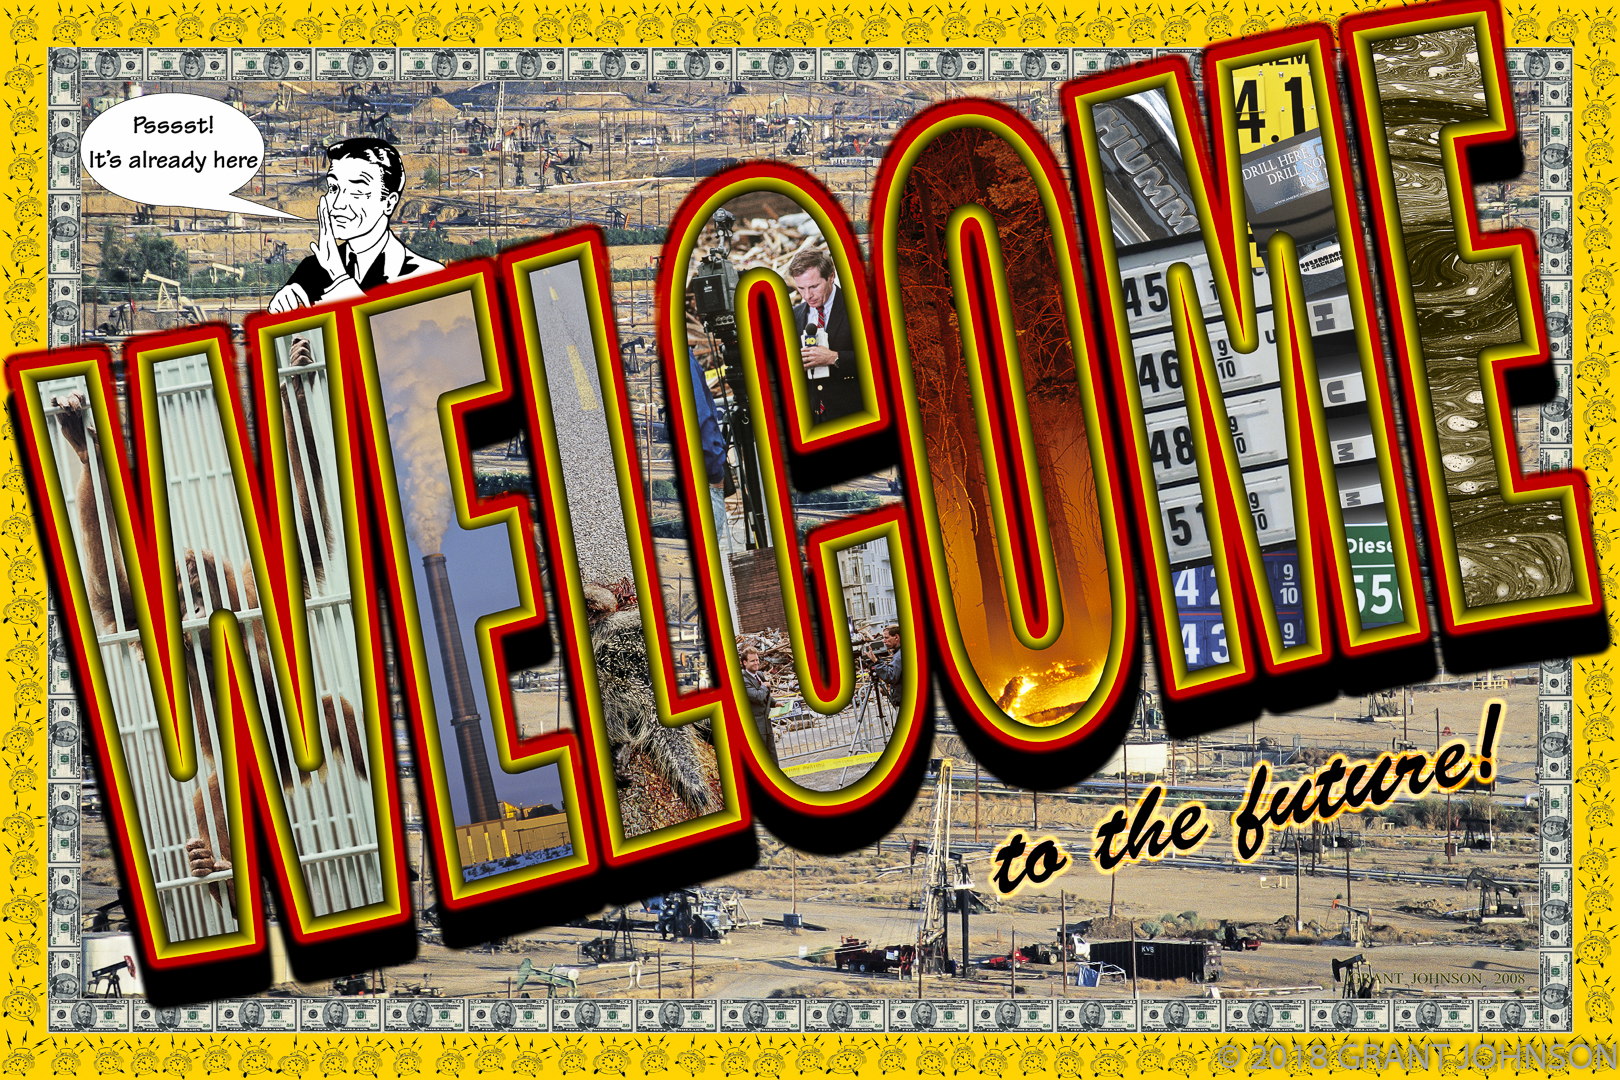 """The Welcome To the Future series is the expression of my concern about how our human existence is affecting all other life on earth. Our anthropocentric perspective reinforced by politics and advertising, encourages harmful behavior in the name of profit for large corporations. If our species expects to be around in a few hundred years, we must bring our existence into harmony with the rest of reality, otherwise the future will not be so welcoming...in fact, it may not exist for us. Each of the collections in Welcome to the Future contains multiple images which are constantly being updated. New categories are being added like """"Flora of the Future"""" and major updates to the """"Forests of the Future"""" as more and more forest is lost to wildfire. My website http://www.grantjohnson.net/gallerycat/Welcome_to_the_Future/14.html features current links to news of these topics."""